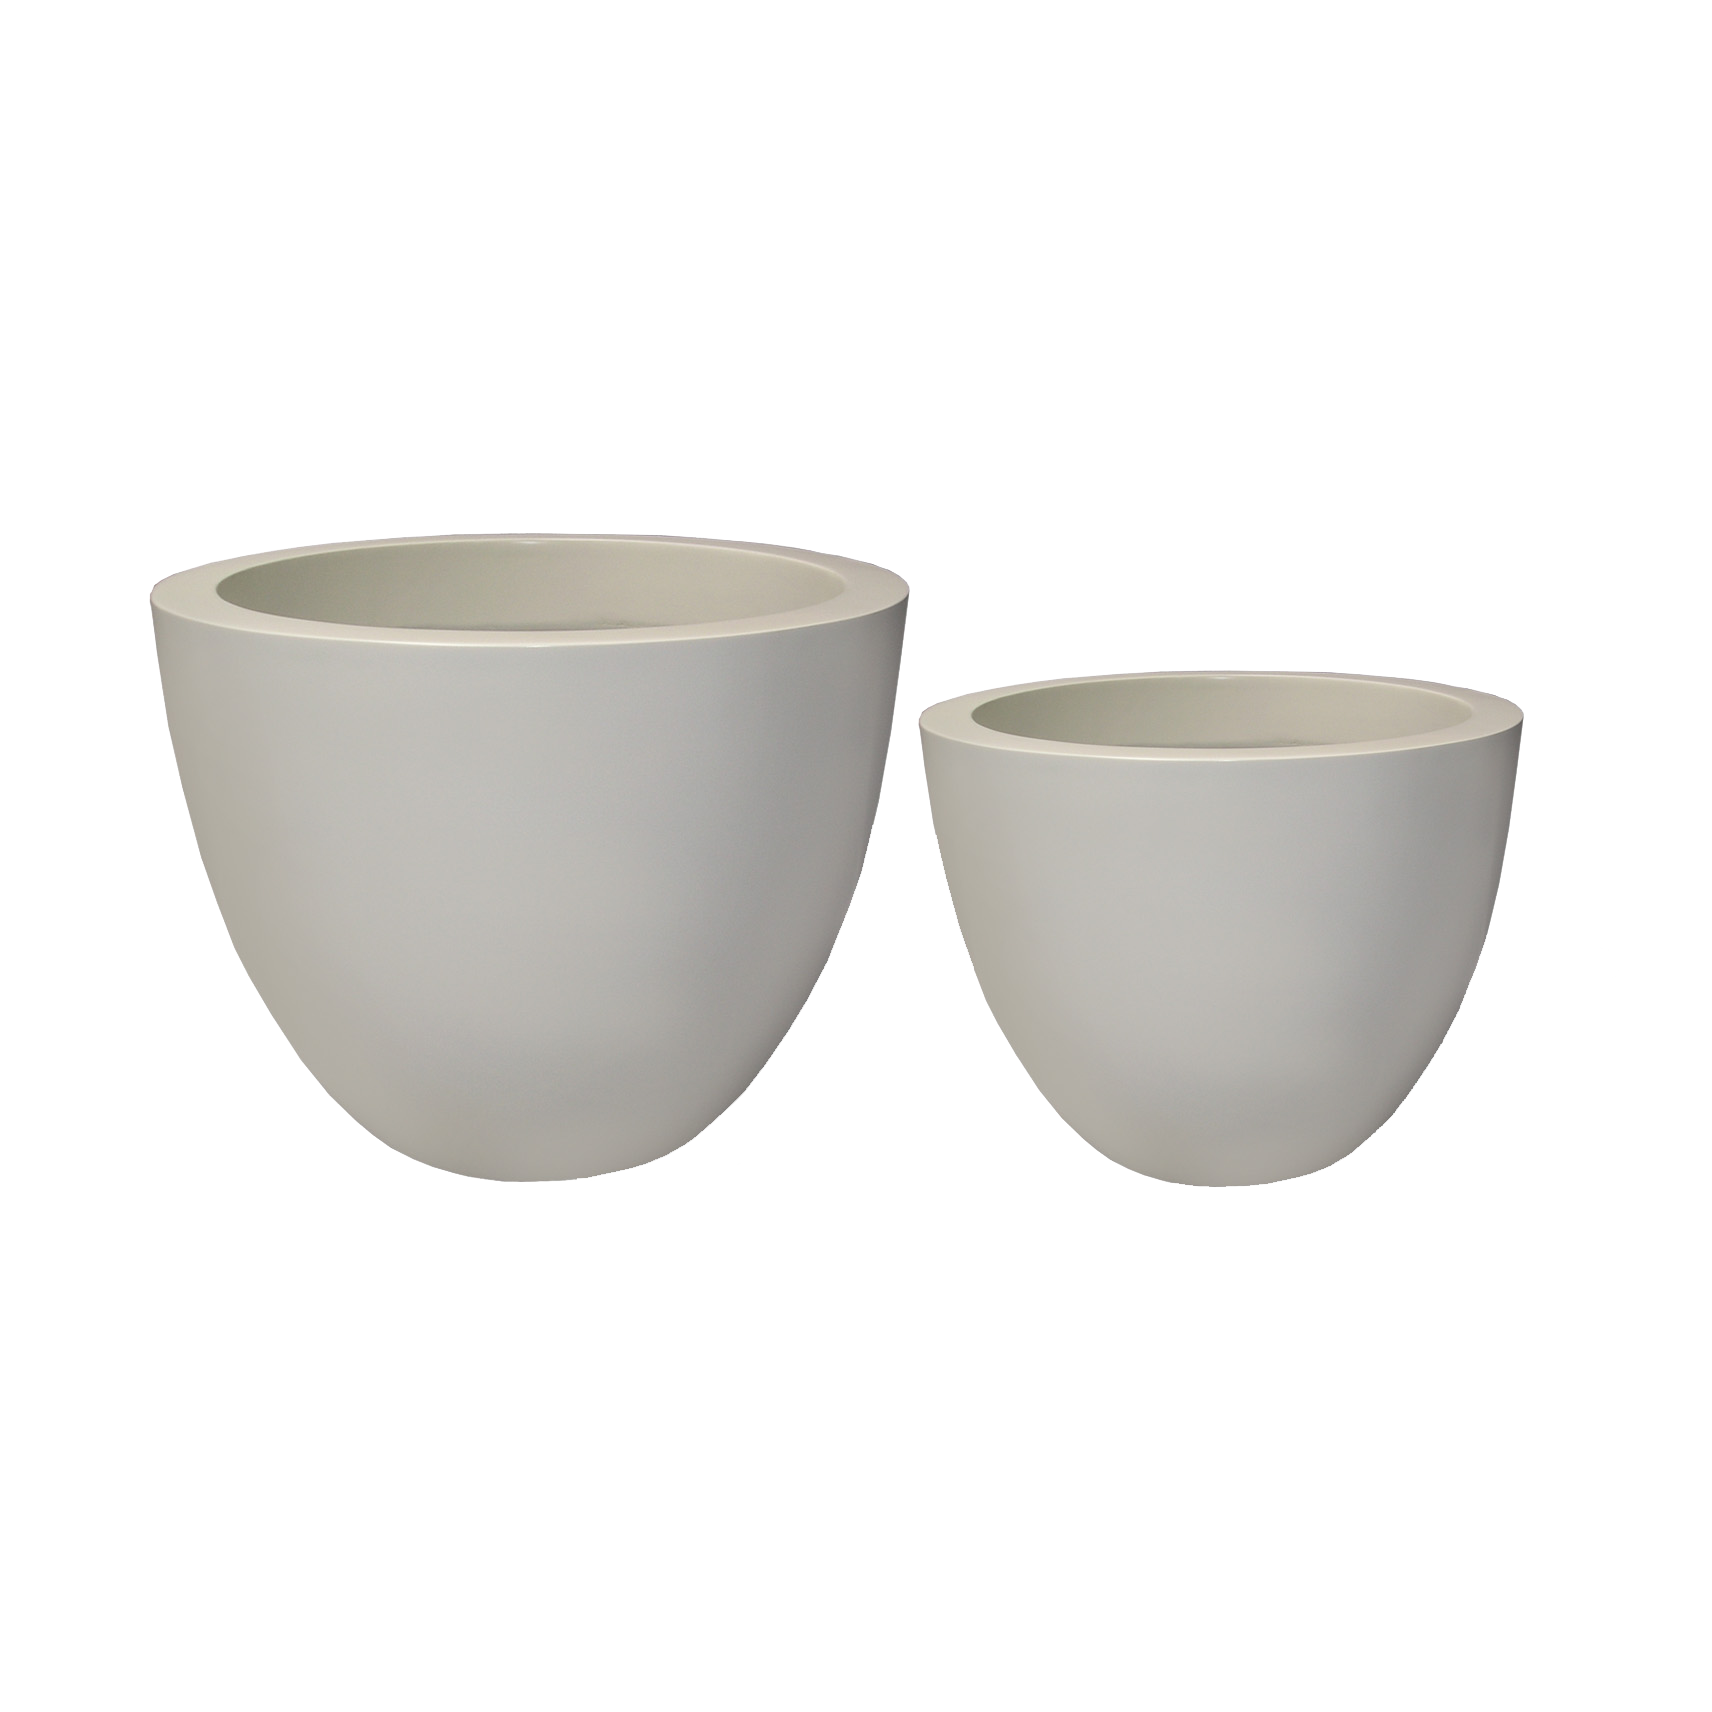 Fiberglass_Pot_White_PNG